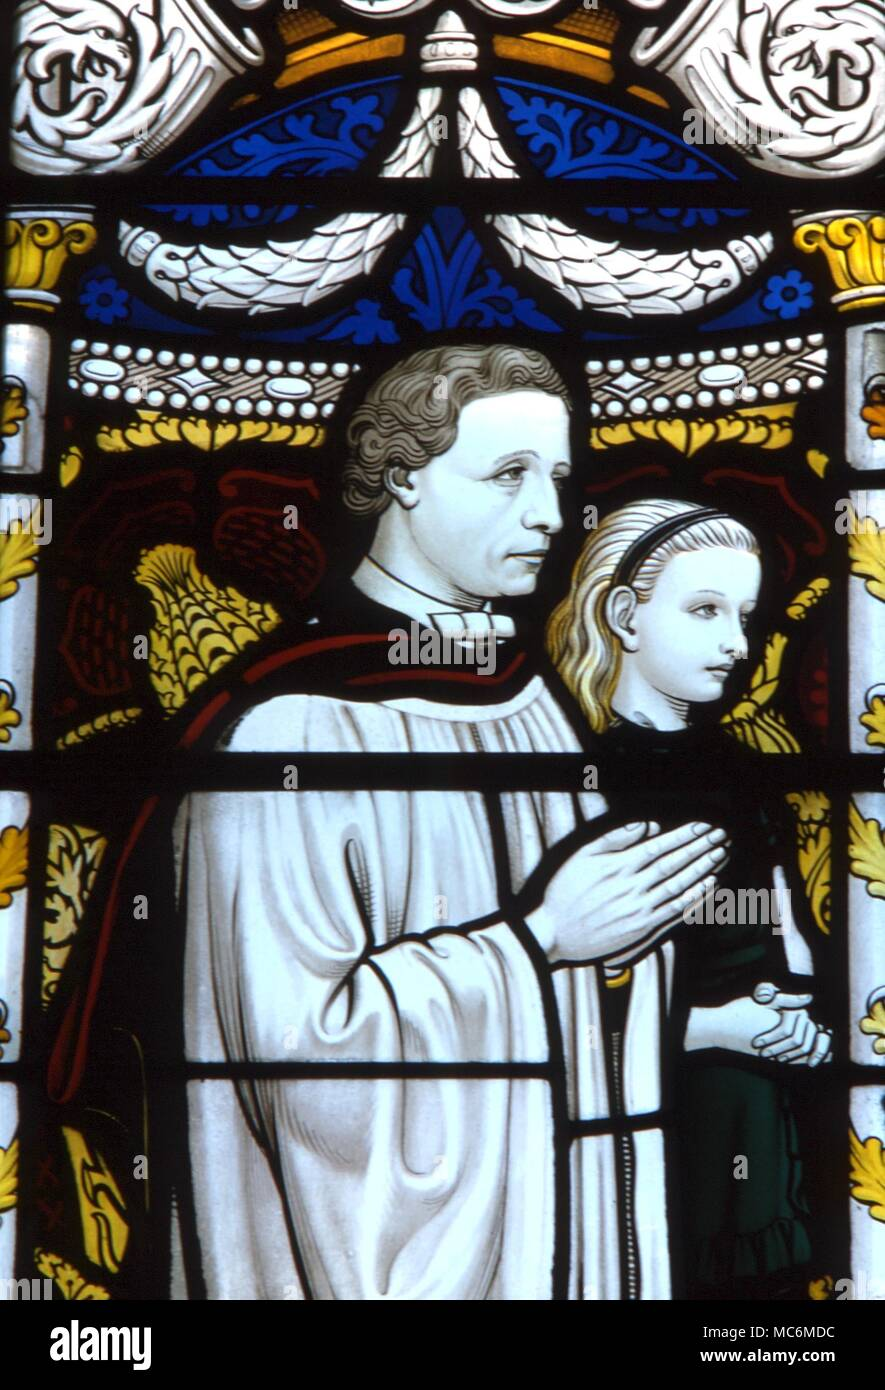 FAIRY TALES - LEWIS CARROLL.  The author Carrol with the young Alice.  Detail from the stained glass window dedicated to Lewis Carroll, in which his fairytale characters appear.  Daresbury parish church - Stock Image